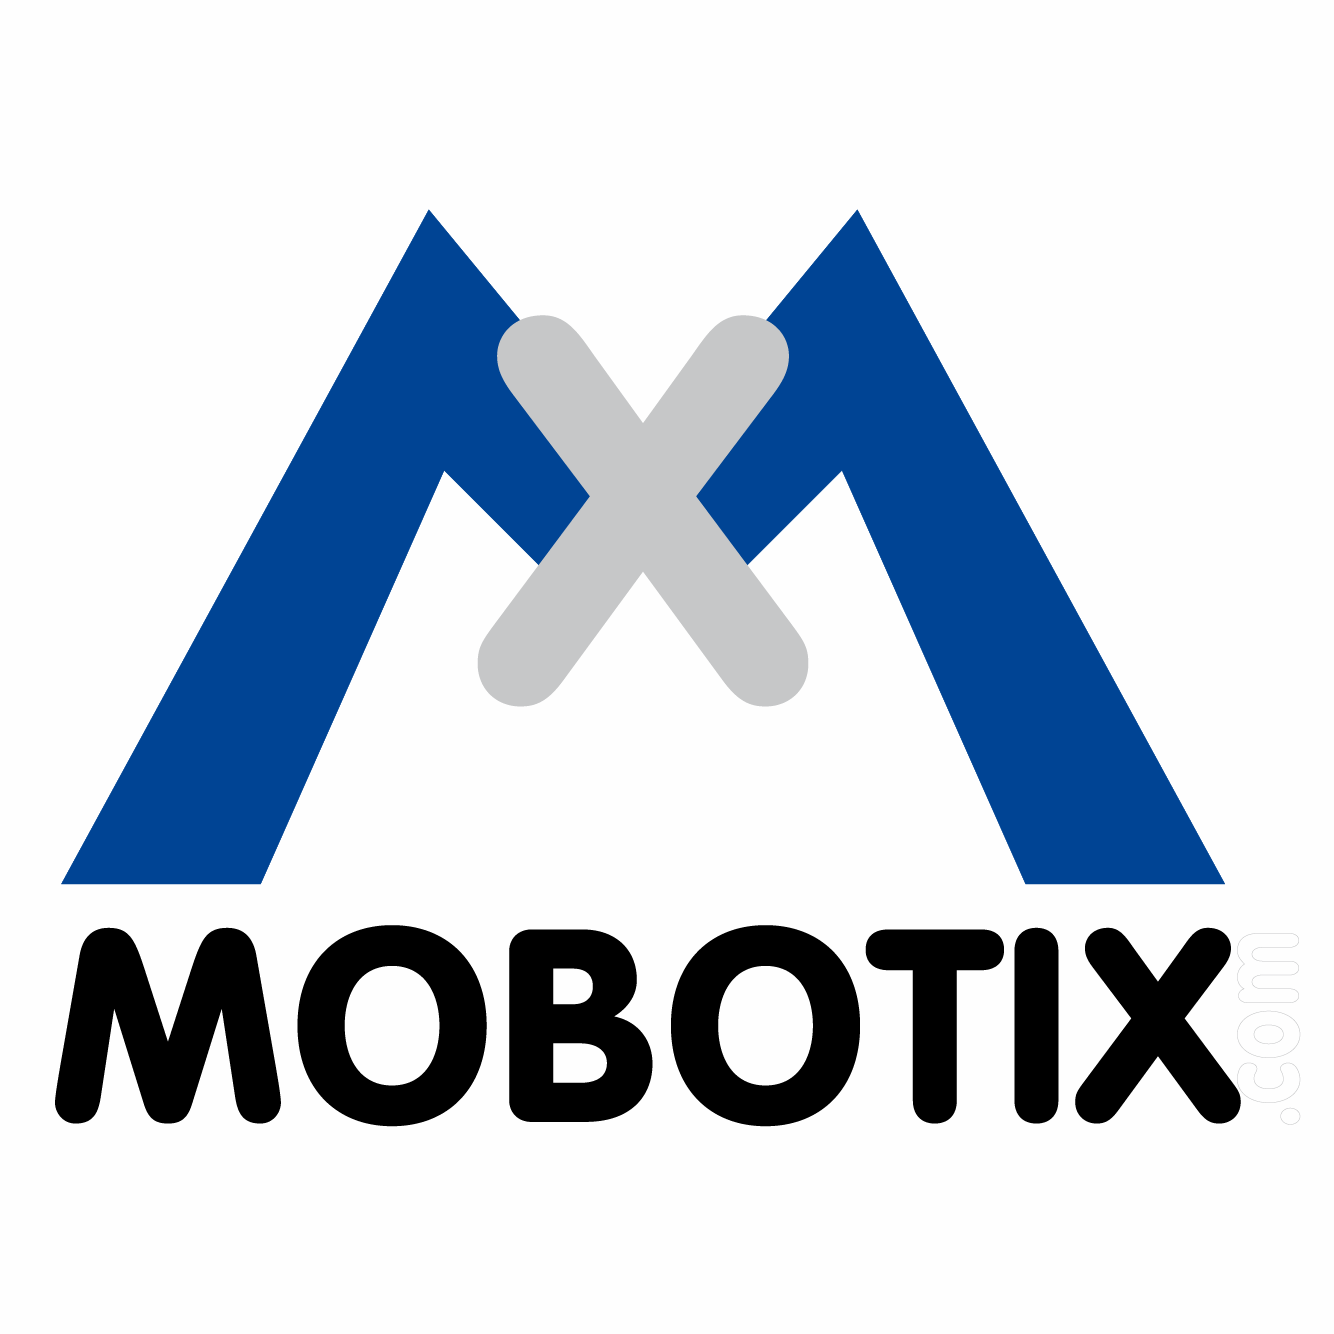 https://www.securetech.ae/wp-content/uploads/2019/02/22.MOBOTIX.png